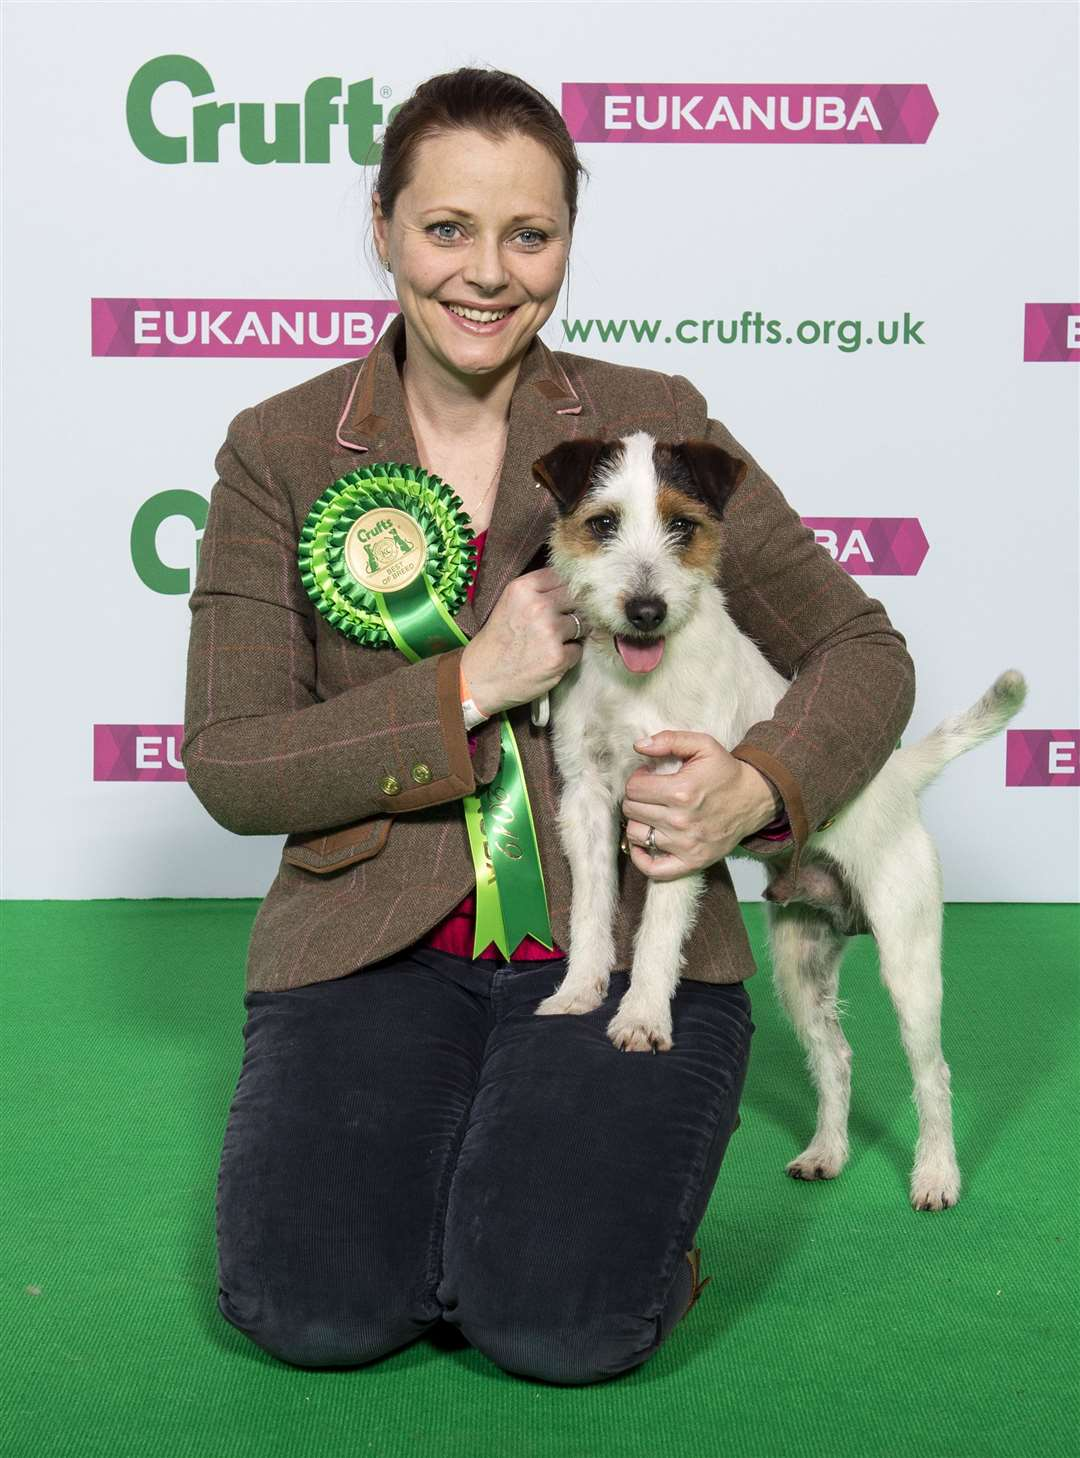 Picture shows Sarah Broadberry from Southwell with Stanley a Parson Russell Terrier, which was the Best of Breed winner today, (Saturday 09.03.19) the third day of Crufts 2019 at the NEC, Birmingham. ..For more information please contact the Press Office via: T: 020 7518 1008 / 1020.E: press.office@thekennelclub.org.uk..Free for editorial use image, please credit: BeatMedia..If you require a higher resolution image or you have any other photographic enquiries, please contact BeatMedia on 020 3026 3780 or email hello@beatmediagroup.co.uk.. (7728582)